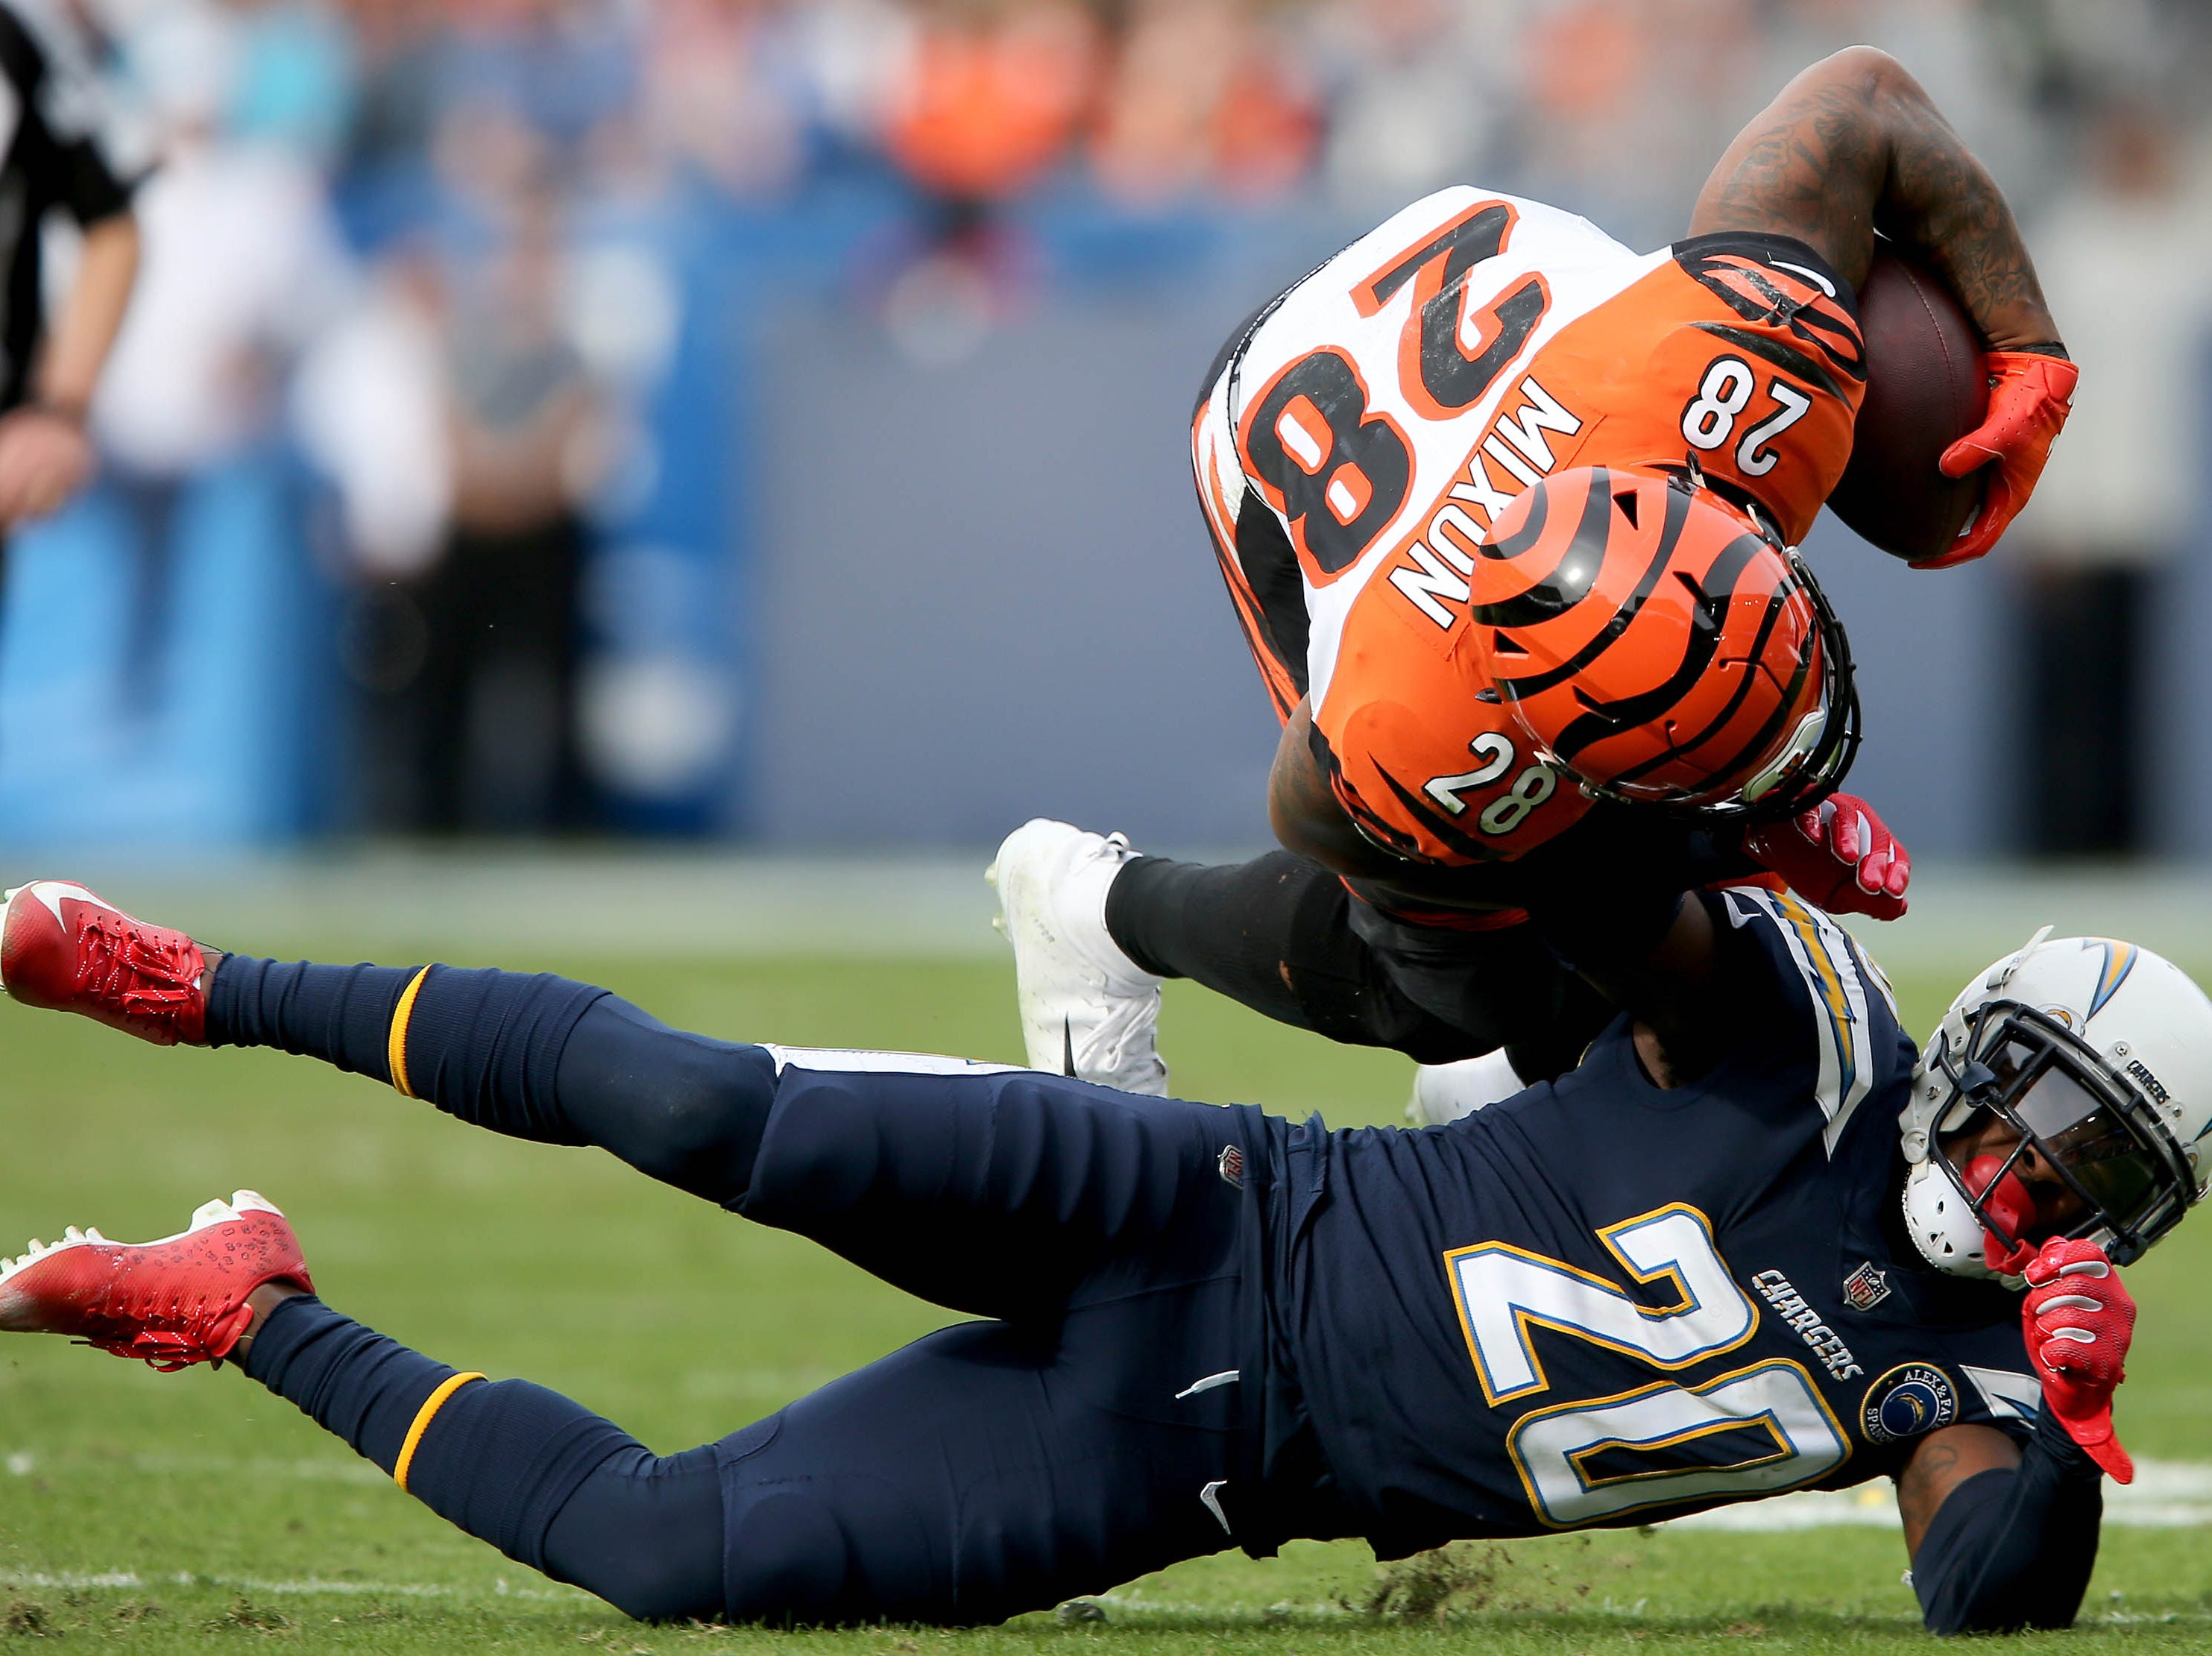 Bengals running back Joe Mixon is hit by Chargers defensive back Desmond King.